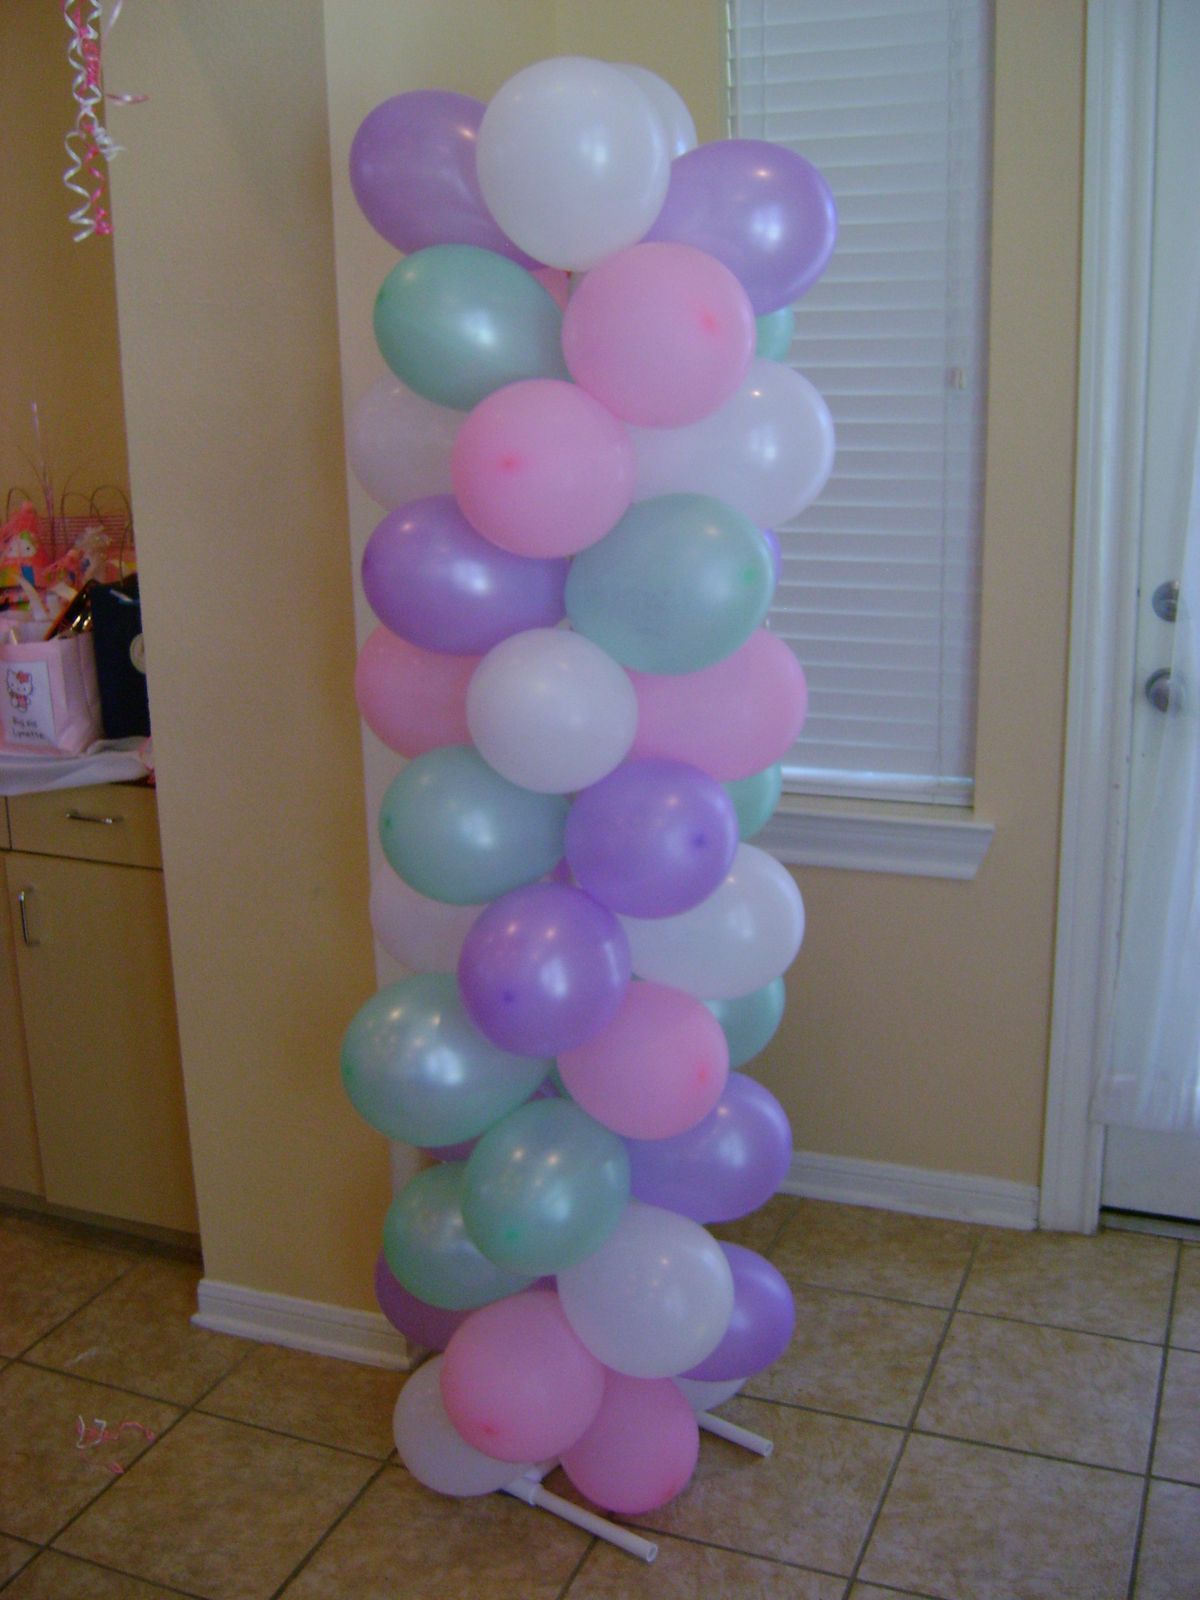 Cute and Sassy Designs by Bonnie: Balloon arches and ...